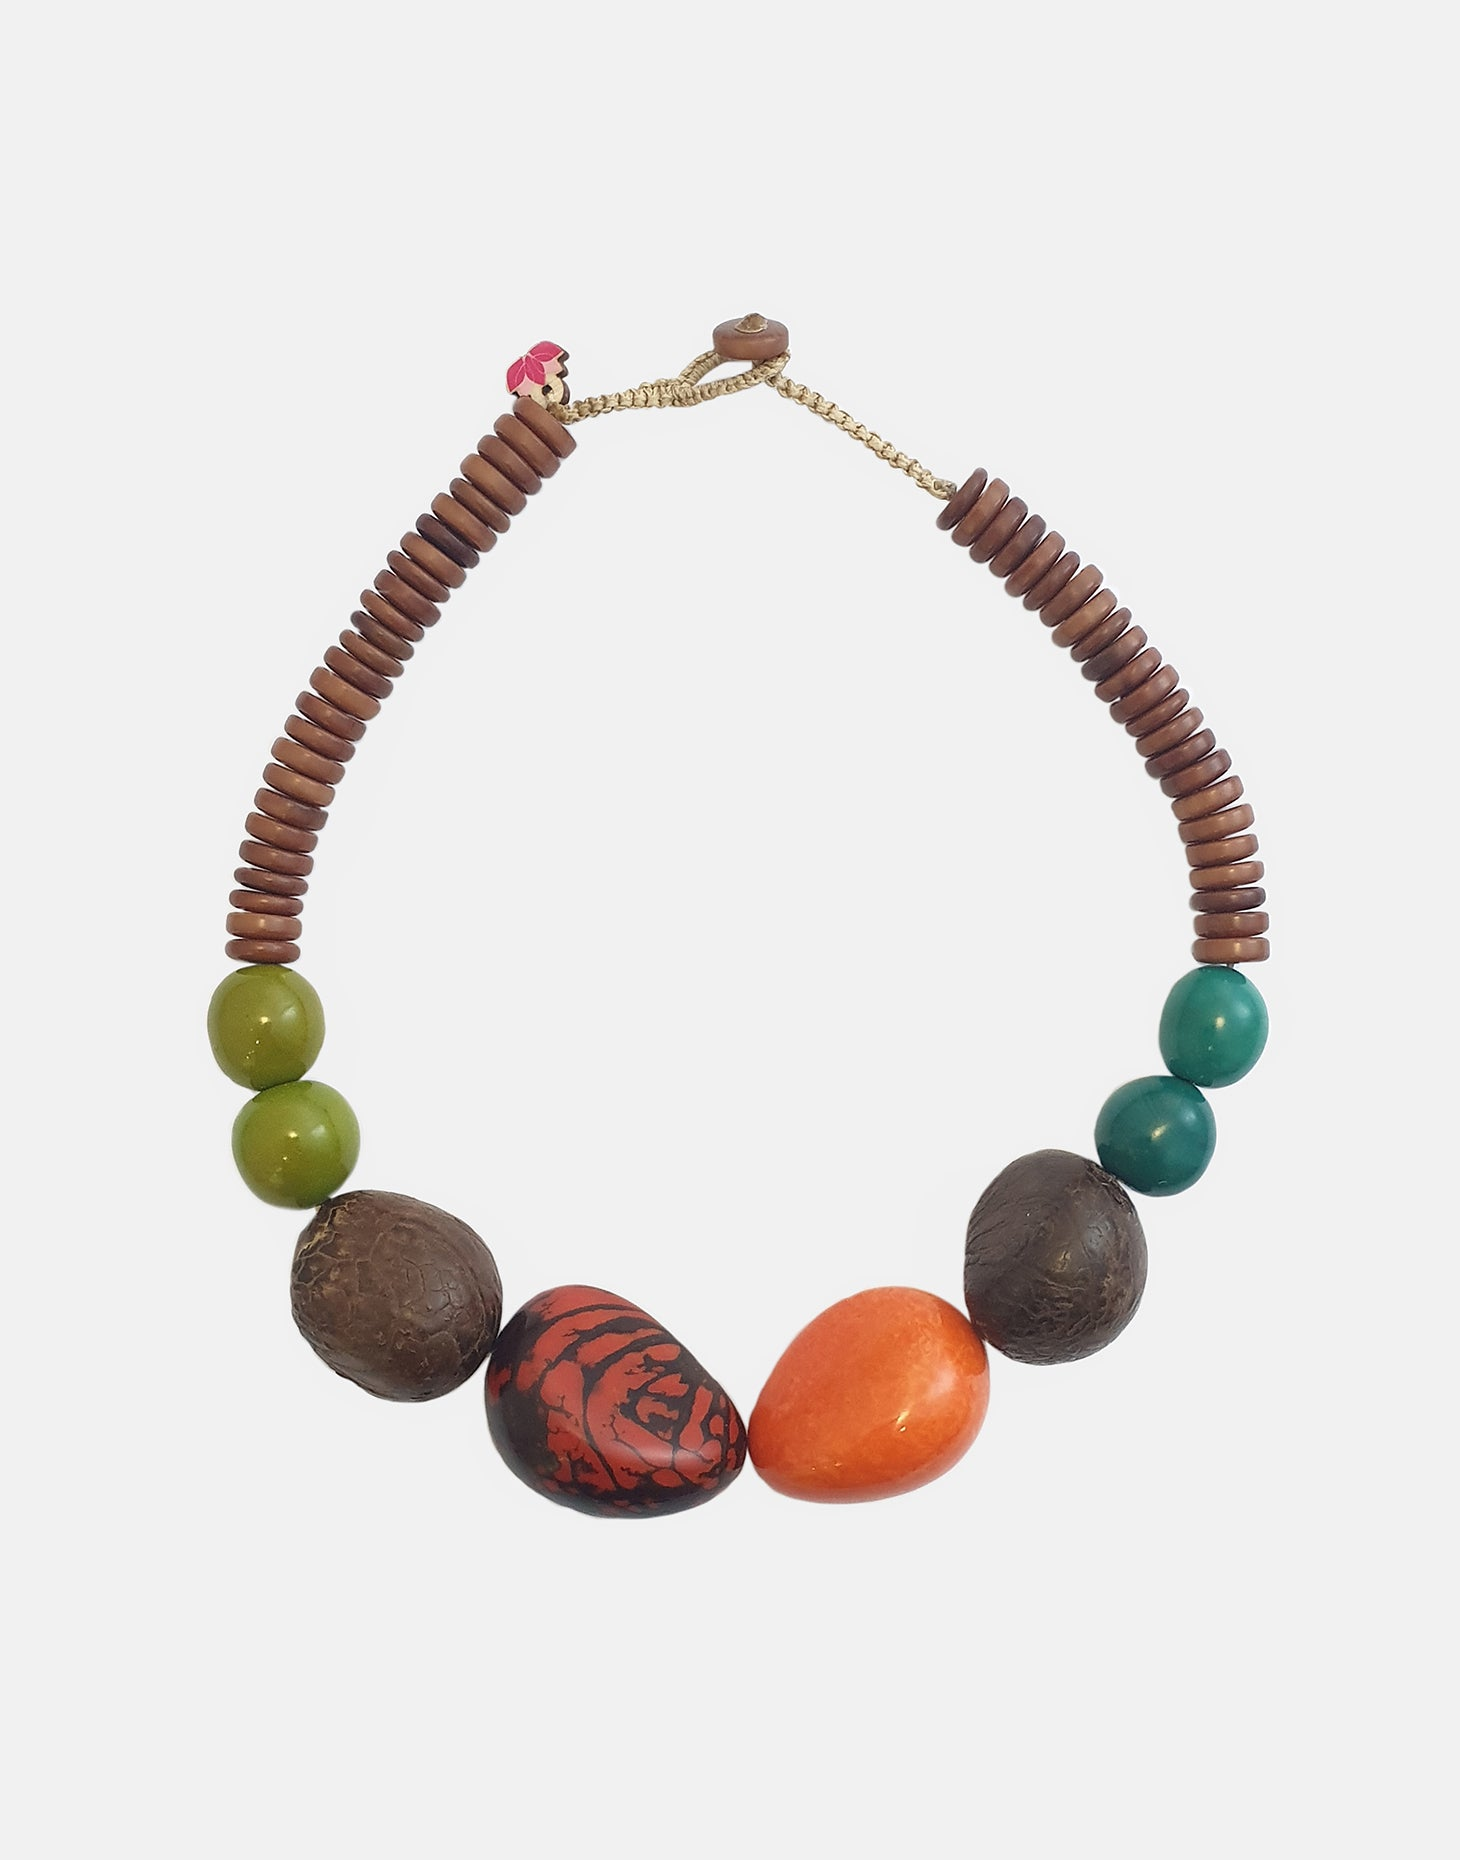 Paru Tagua Nut Necklace - Pretty Pink Jewellery